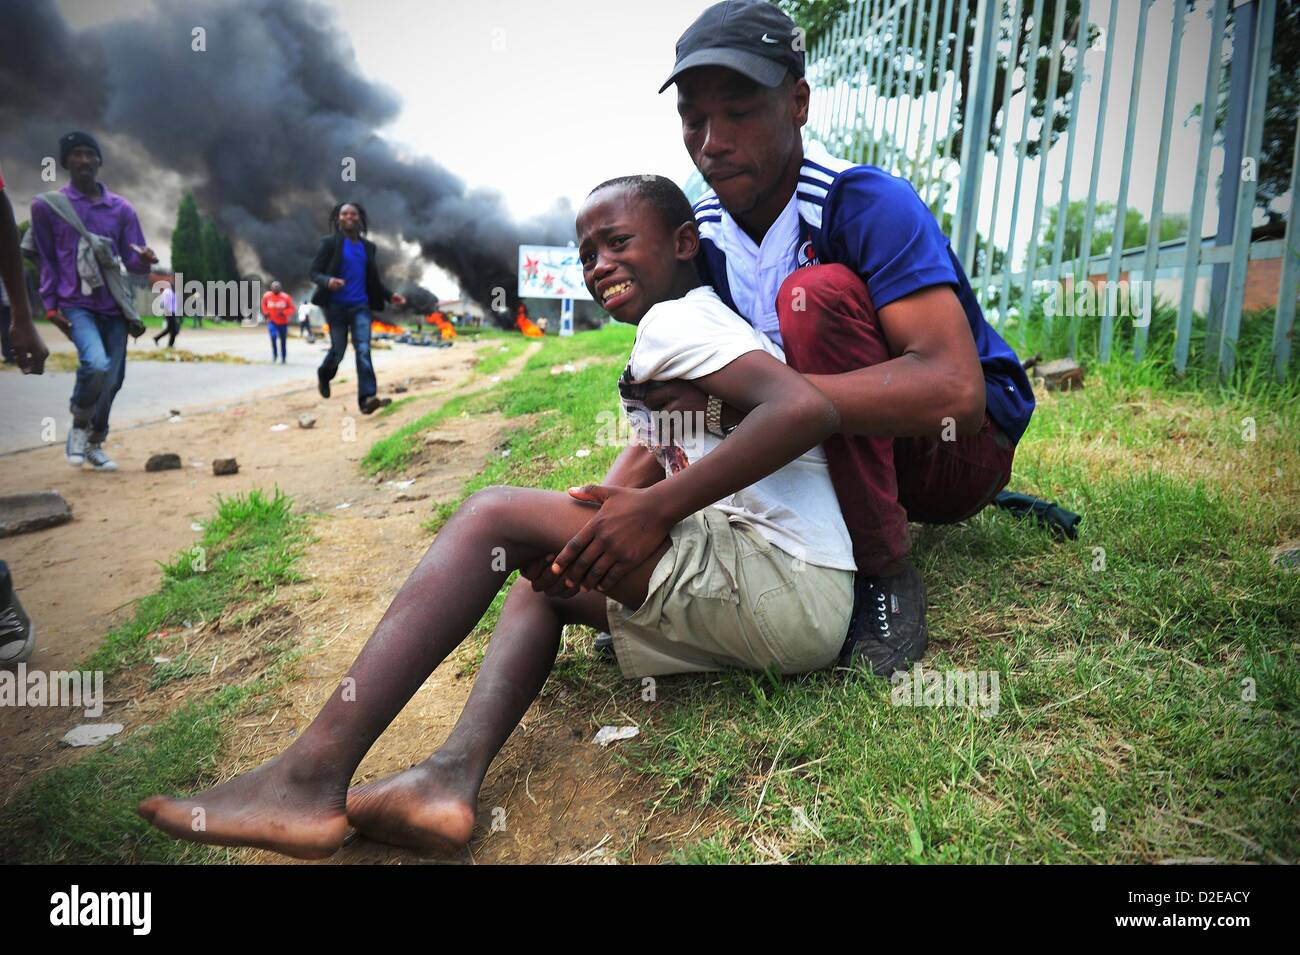 SASOLBURG, SOUTH AFRICA: Dumisani Mthimkhulu is hit by a rubber bullet on his leg on January 20, 2013, in Sasolburg, - Stock Image